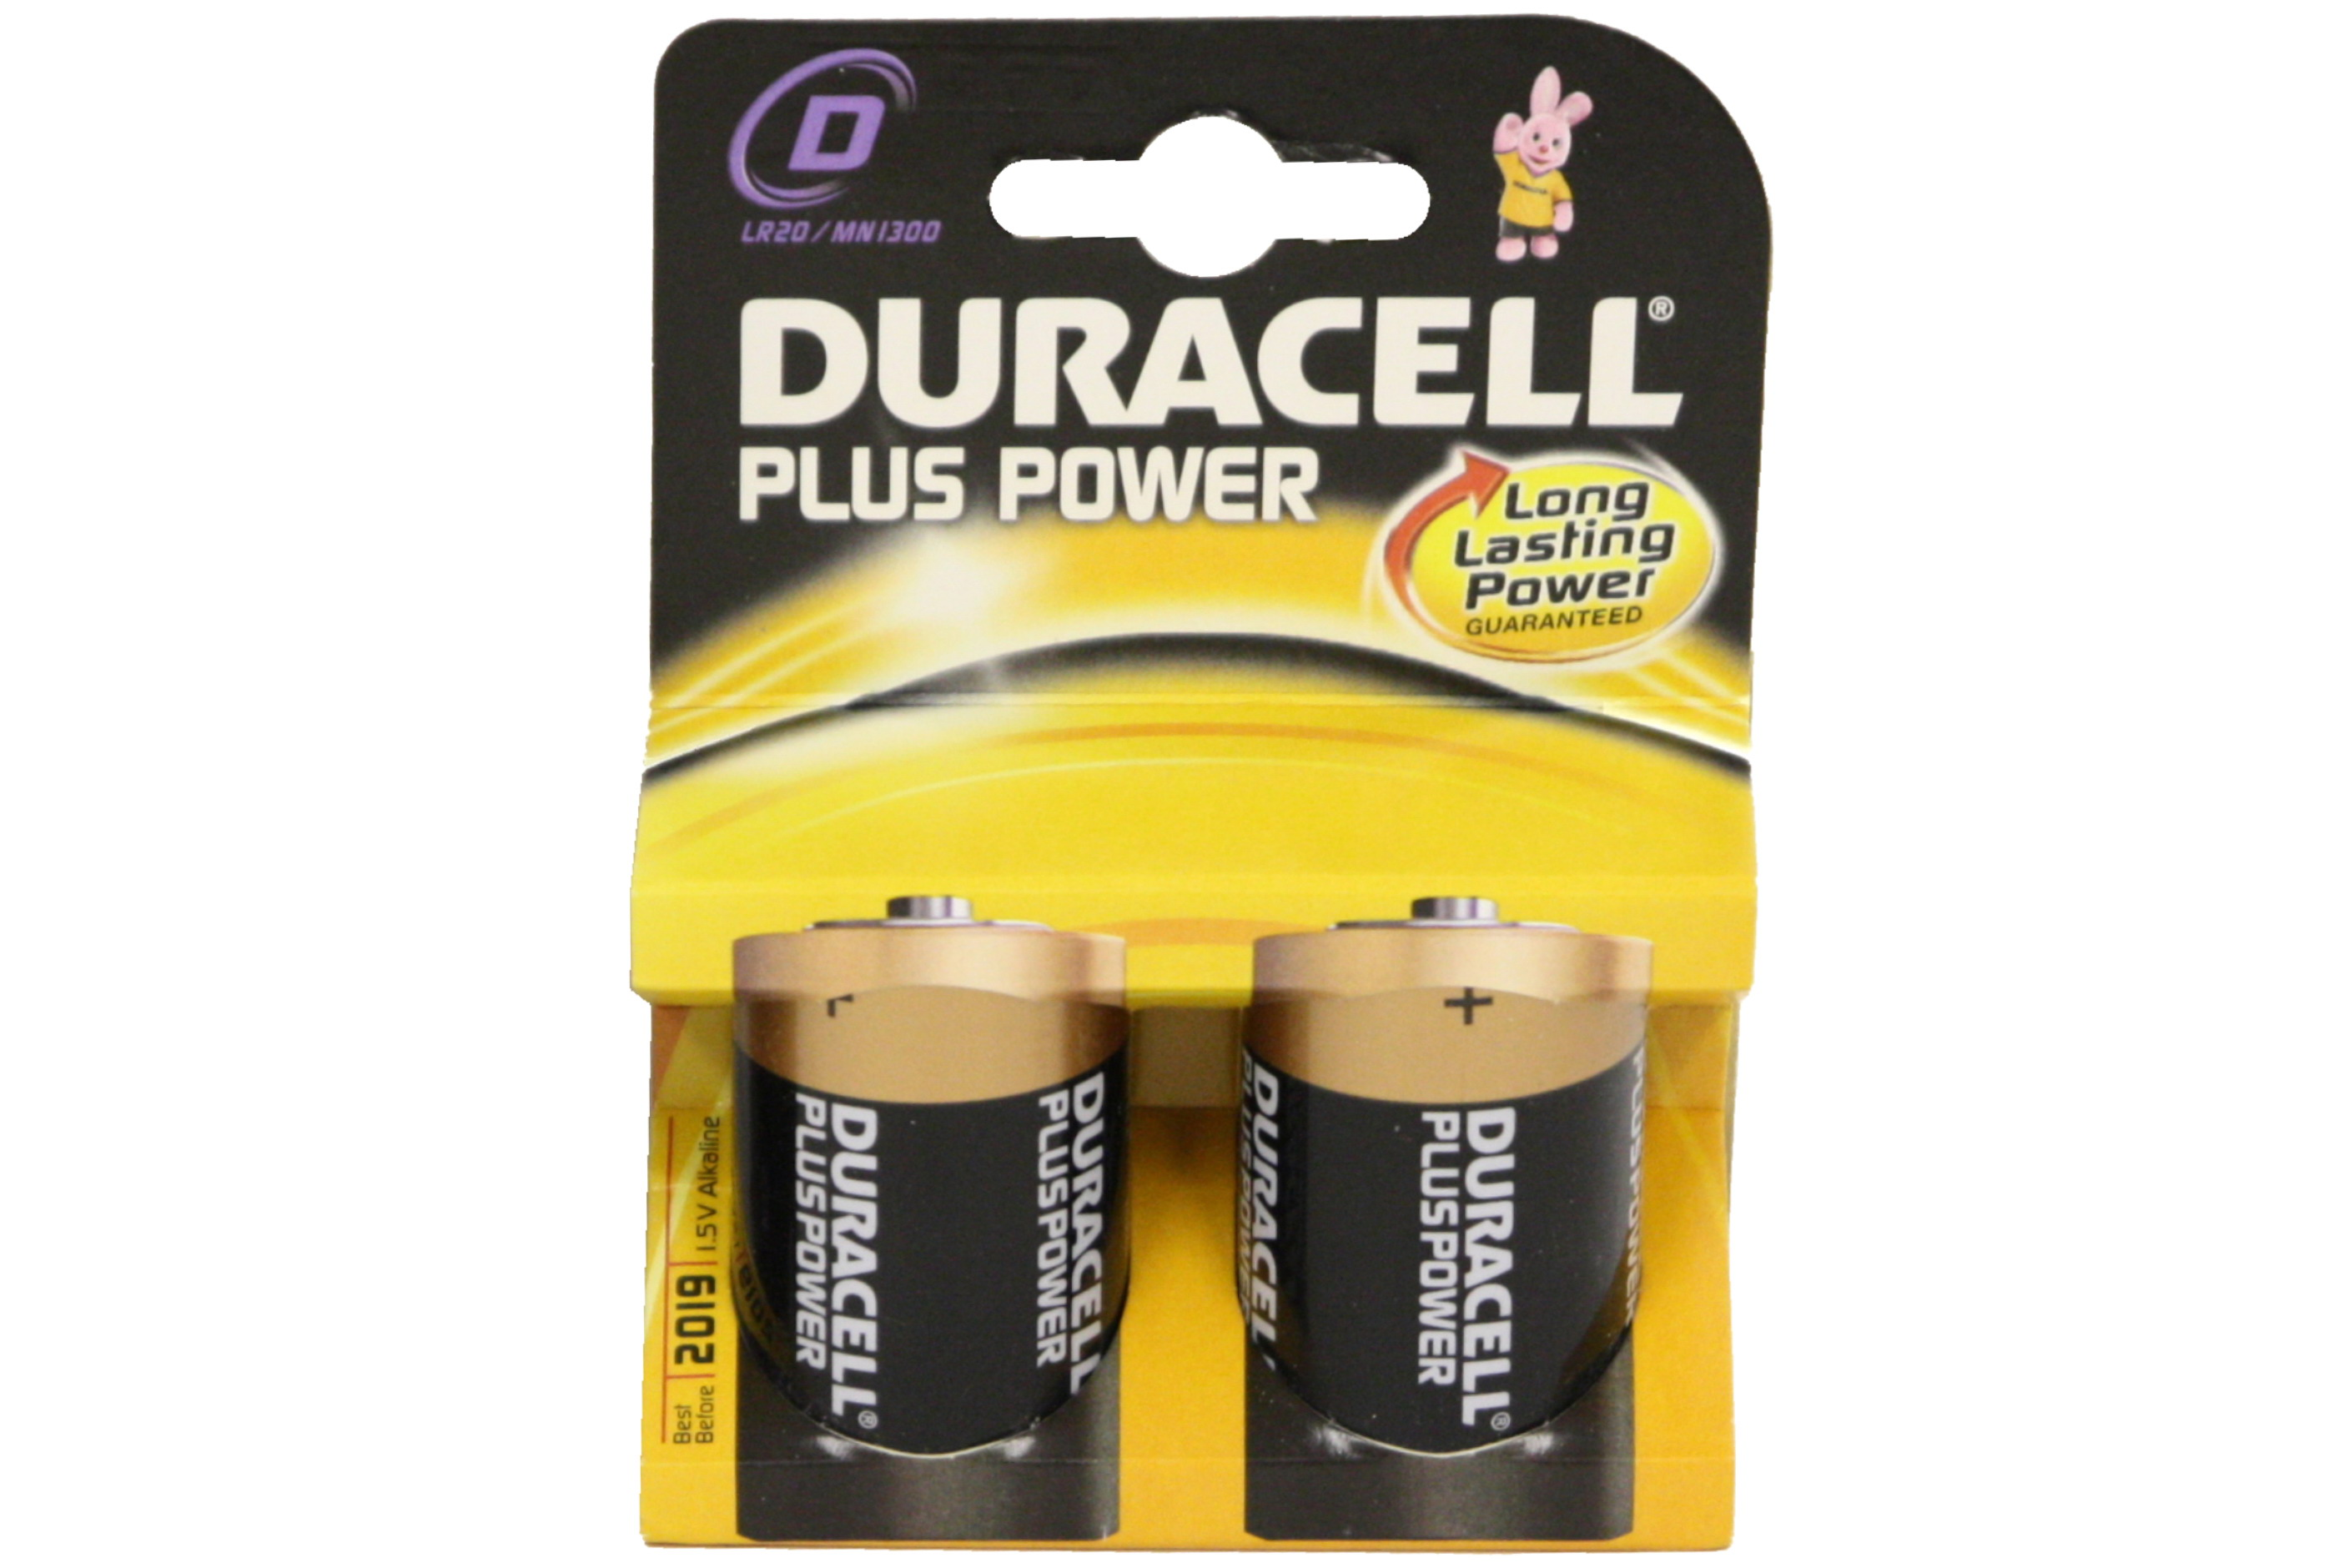 Duracell D Batteries Mn1300 - 2 Pack